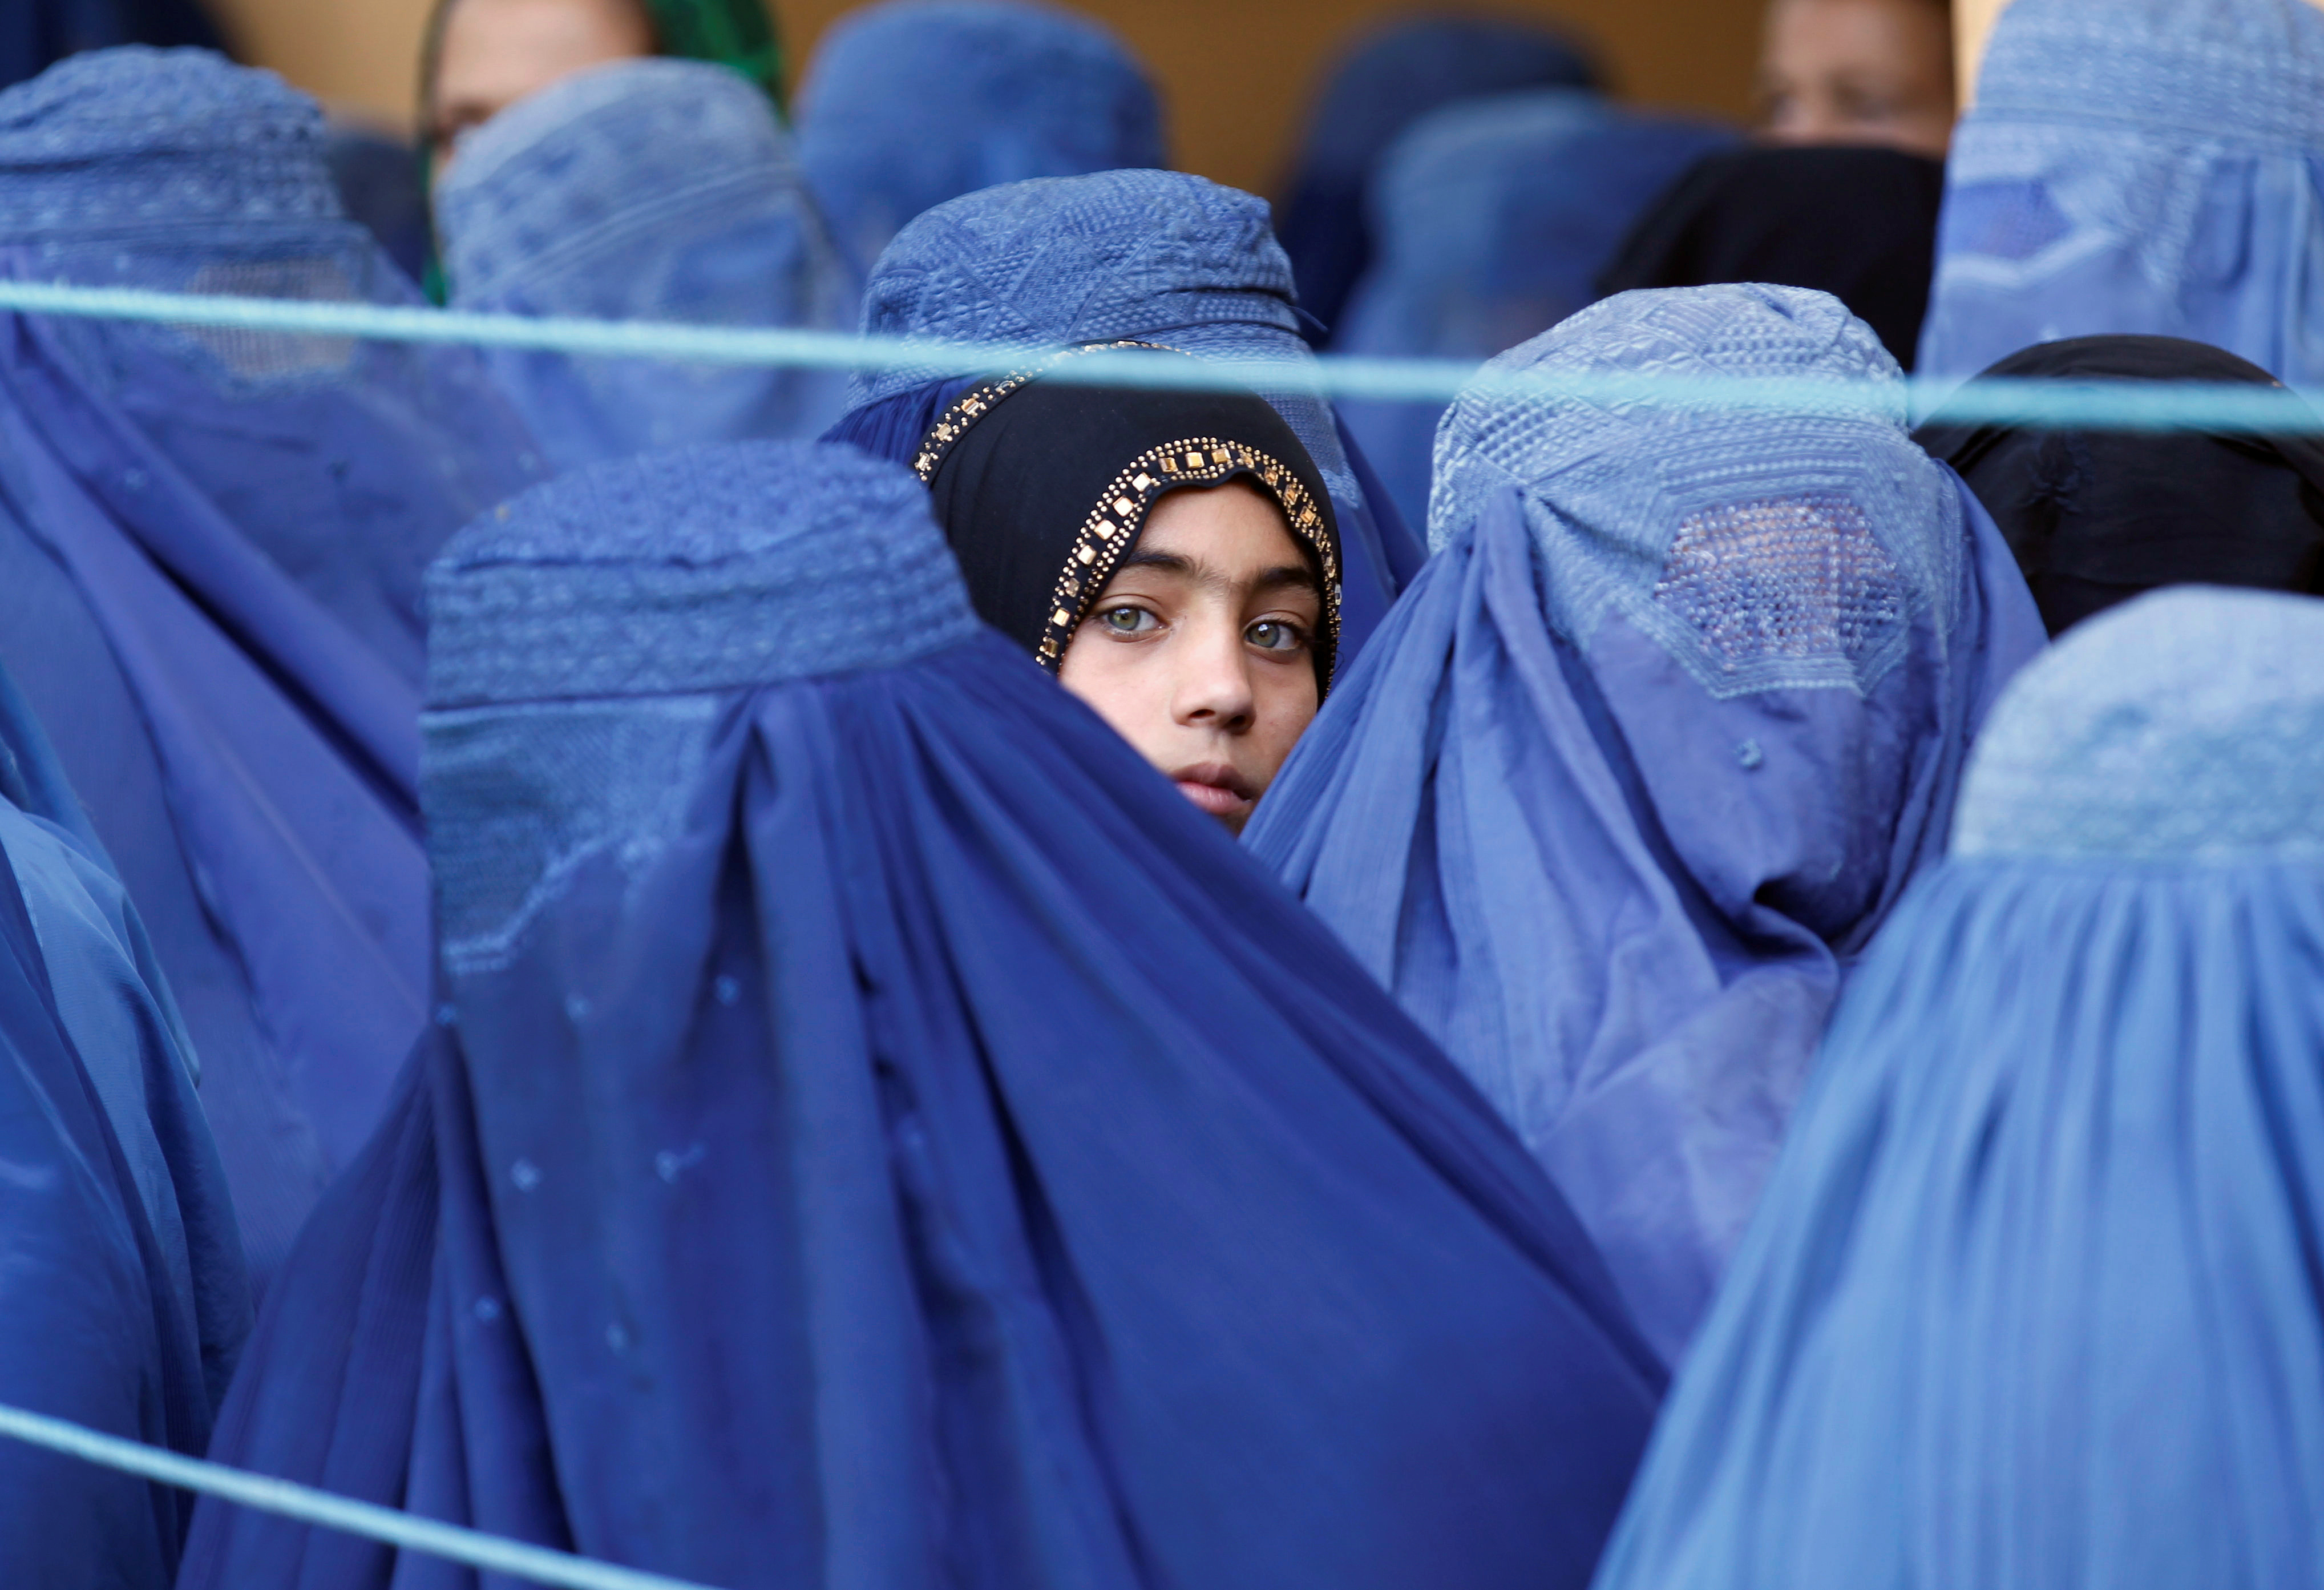 A girl looks on among Afghan women lining up to receive relief assistance, during the holy month of Ramadan in Jalalabad, Afghanistan, June 11, 2017. REUTERS/Parwiz